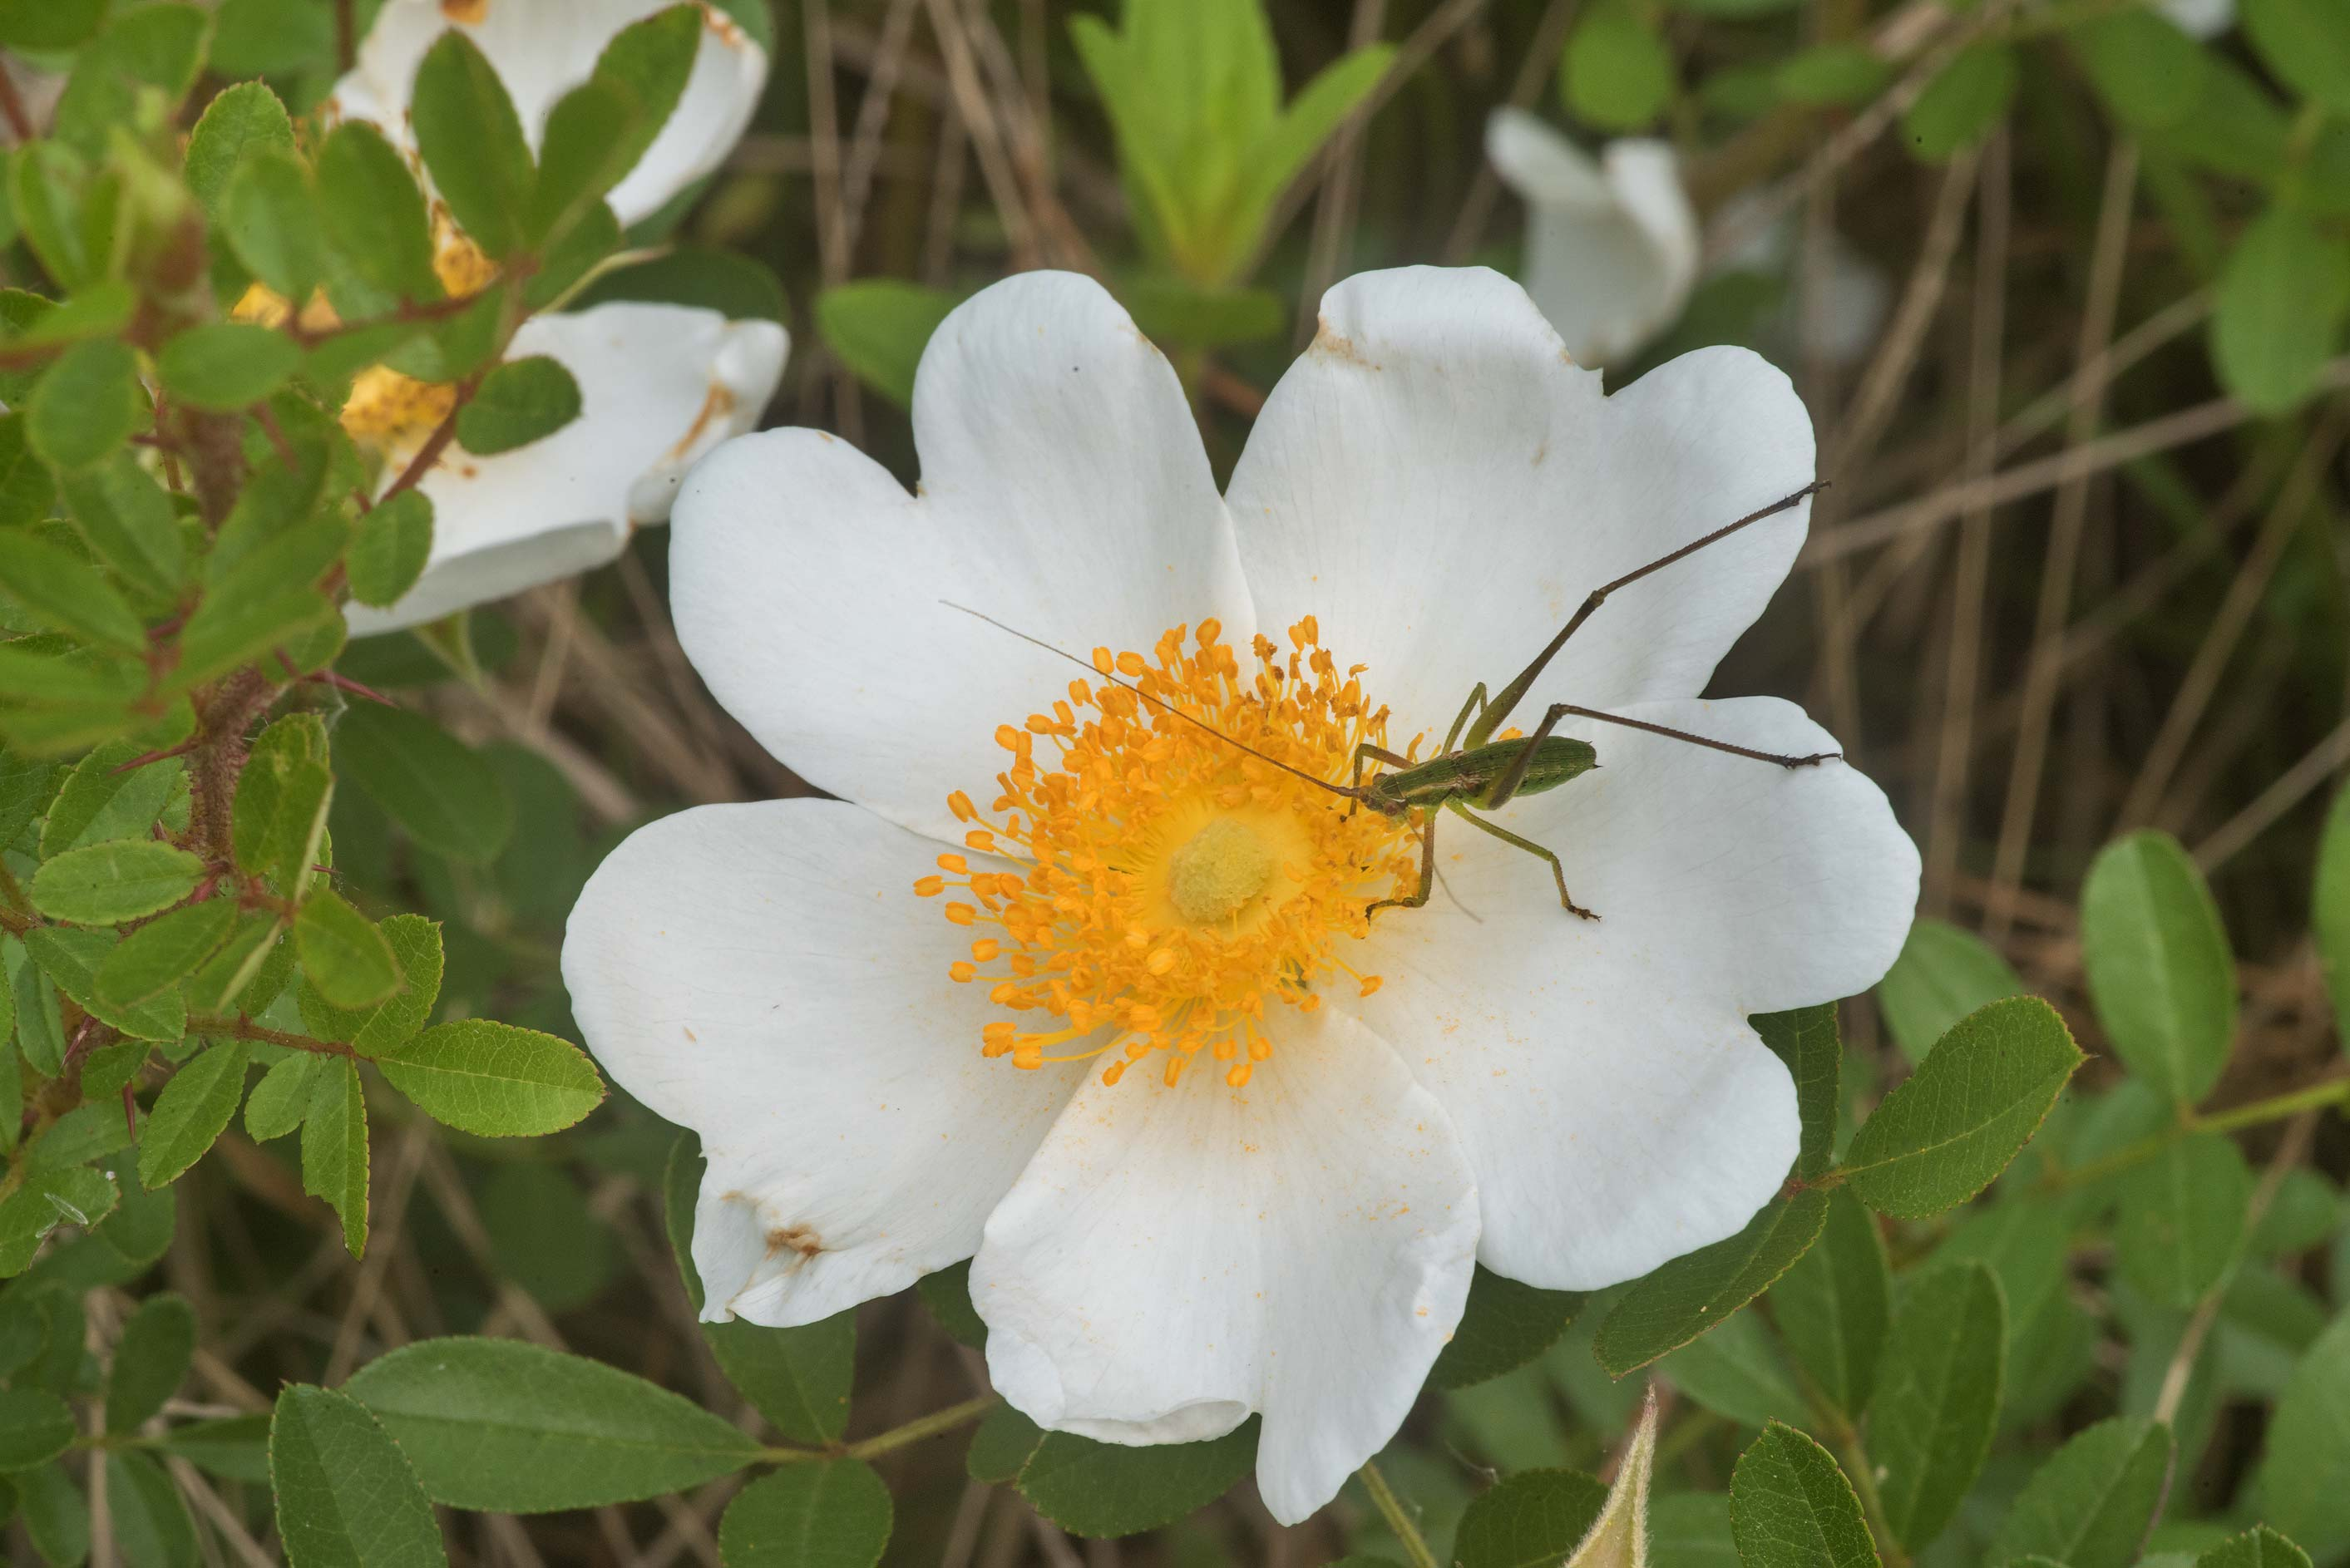 Blooming Macartney rose (Rosa bracteata) on...in Sam Houston National Forest. Texas